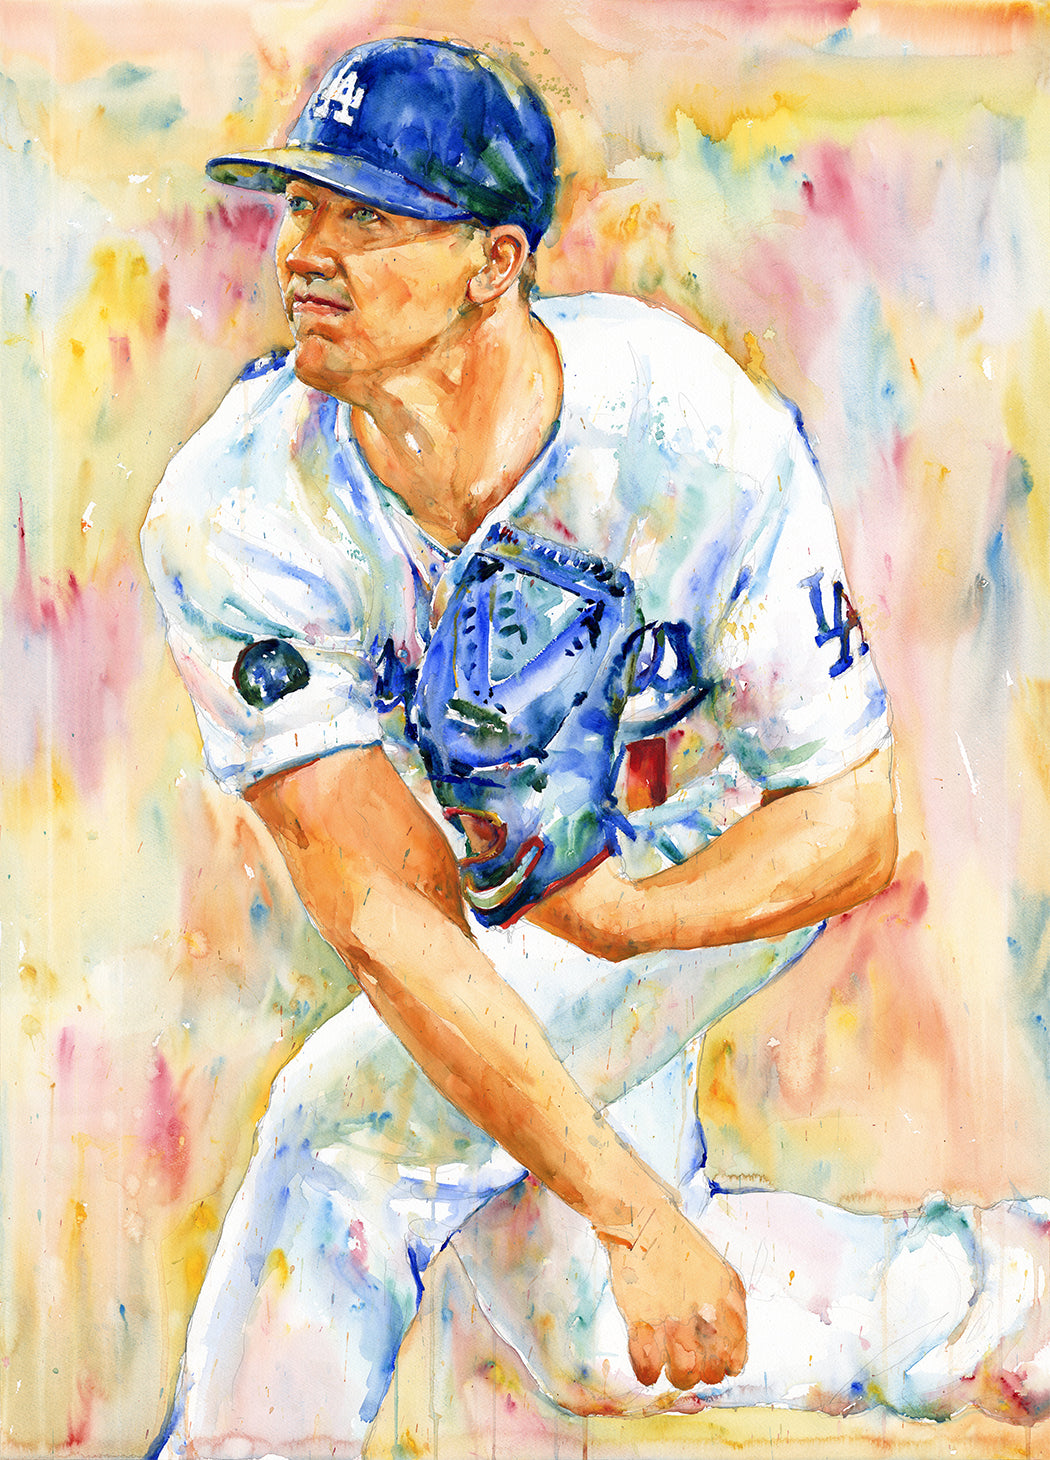 Walker Buehler - Original Topps Watercolor painting